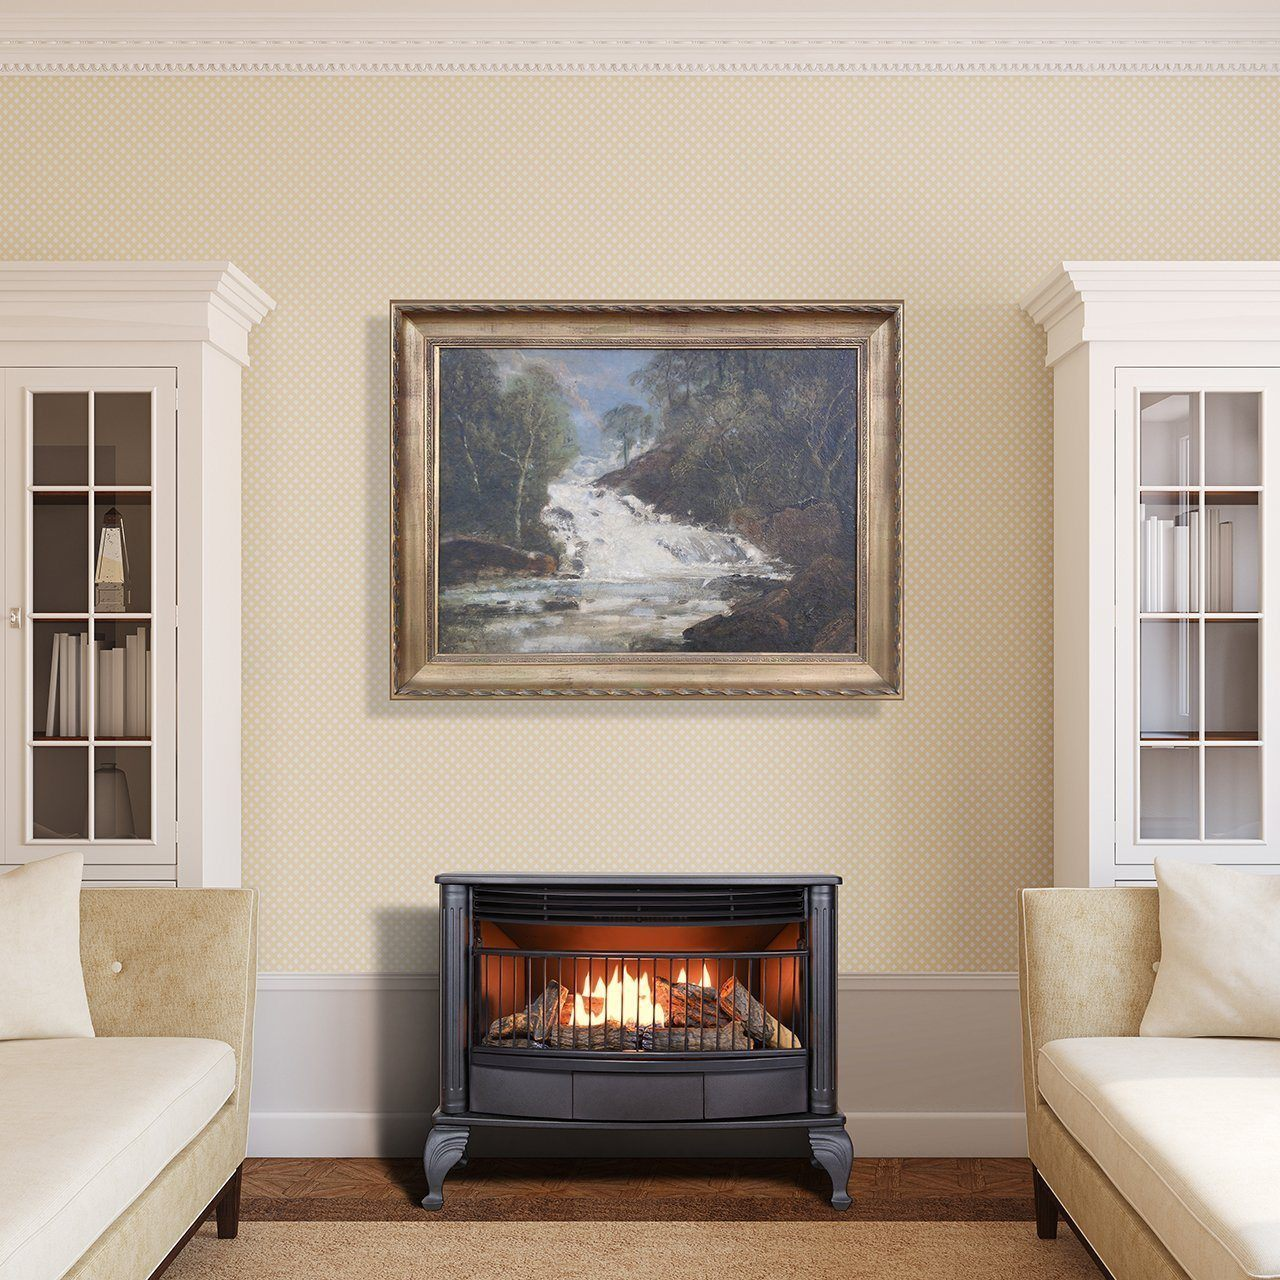 Avalon Gas Fireplace Inserts Small Direct Vent Gas Fireplace Inserts Year Of Clean Water